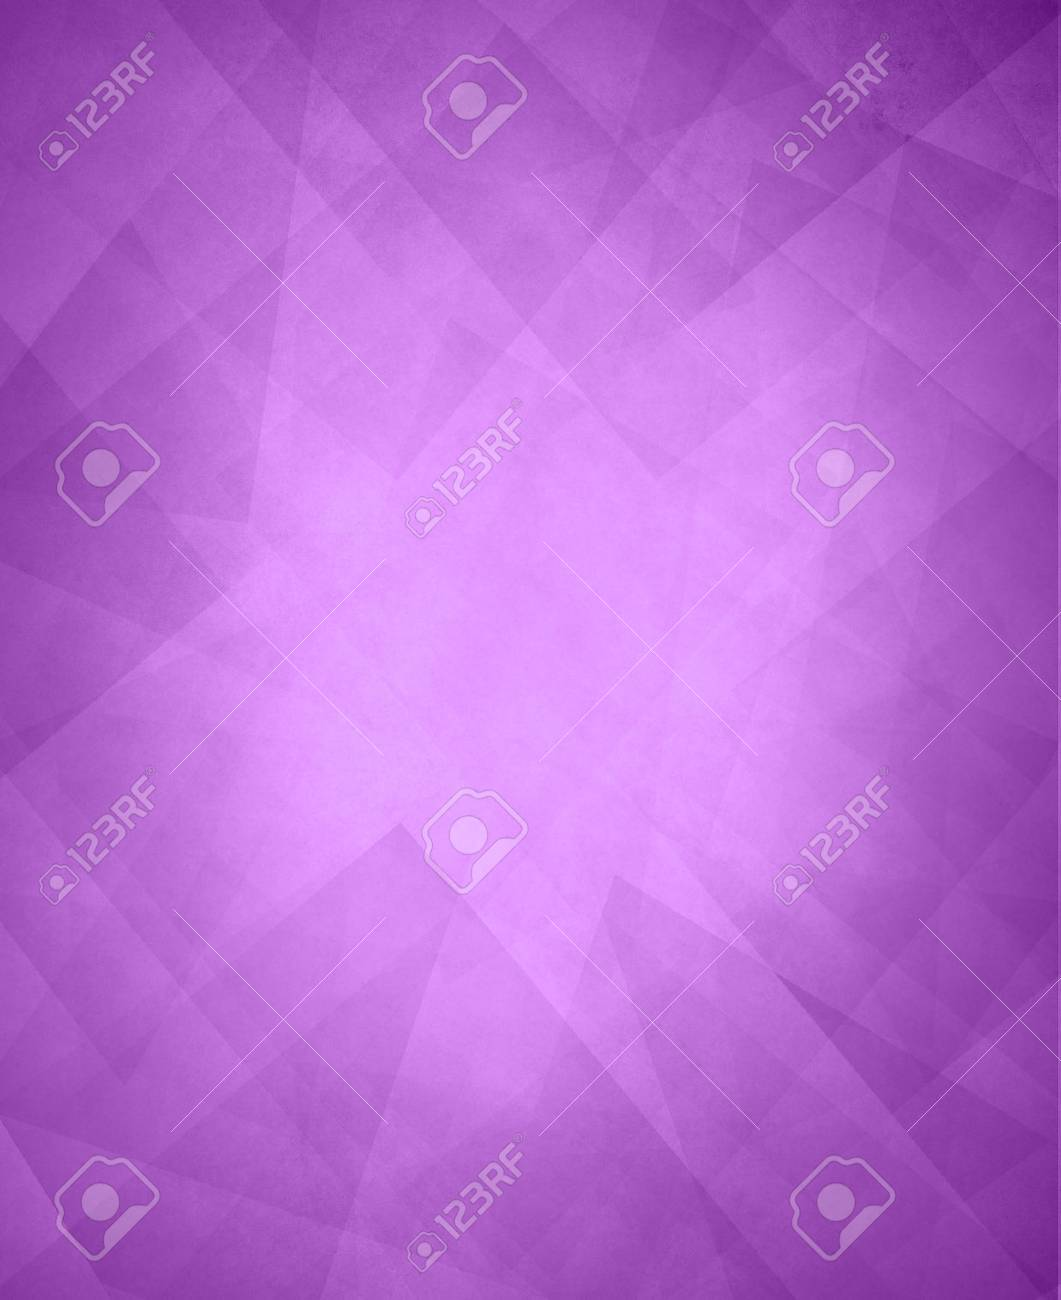 purple abstract background - 54420574